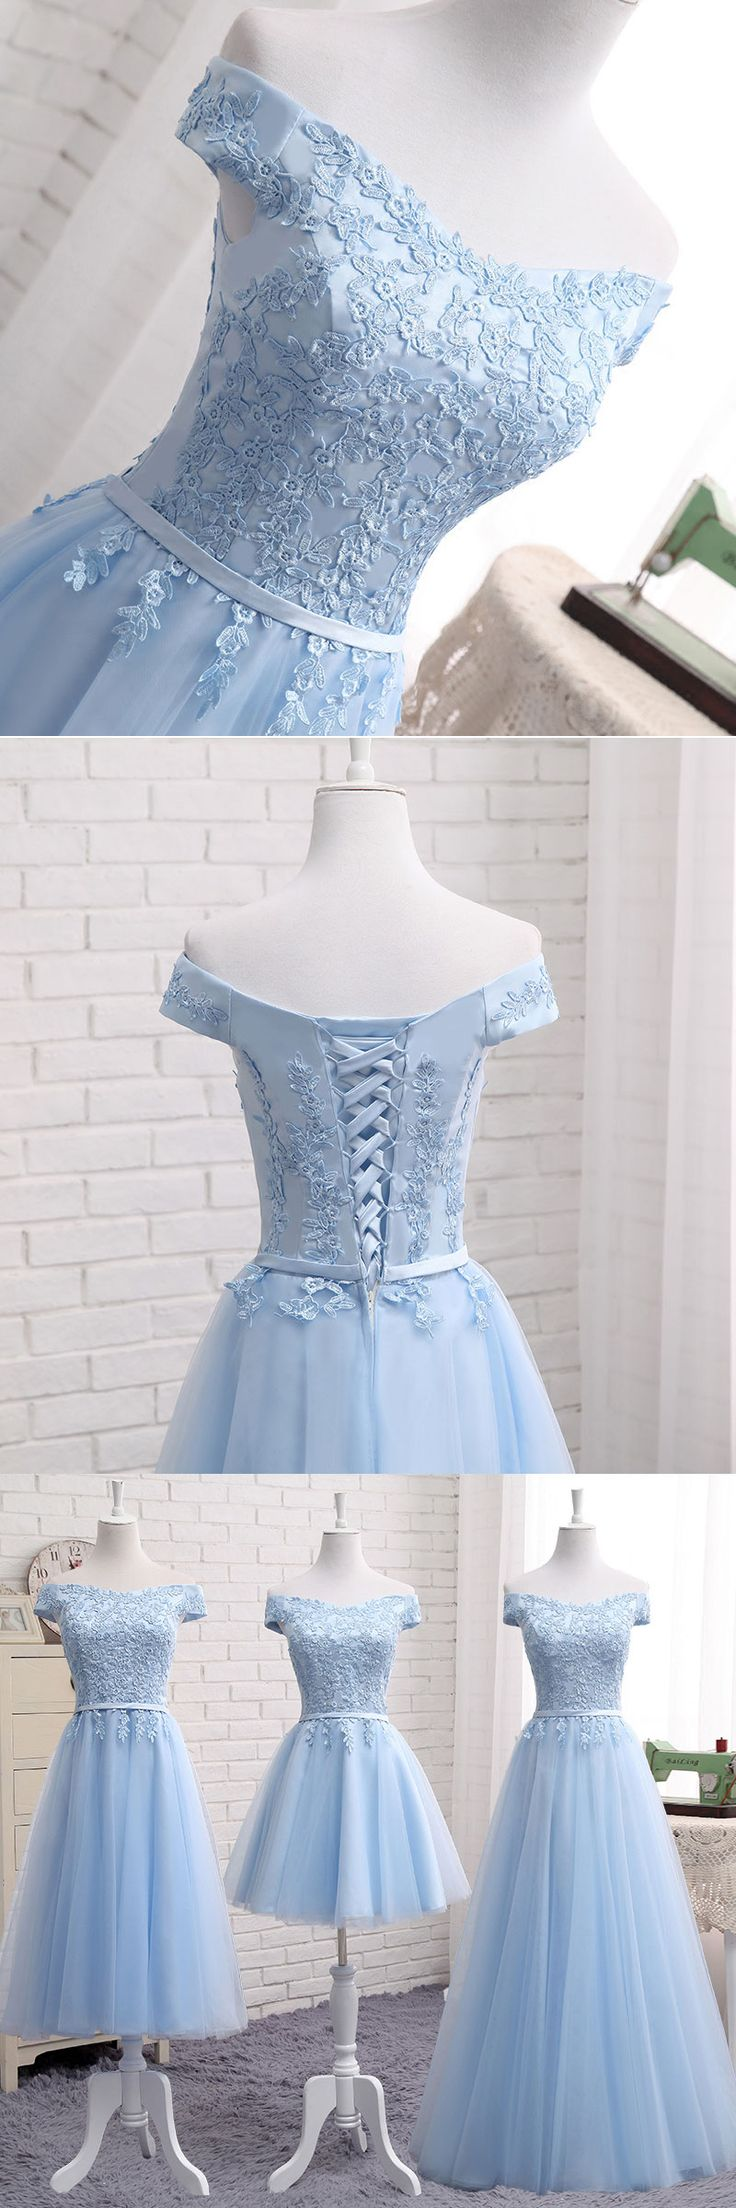 of girl | Cute a line lace off shoulder prom dress, lace evening dresses | Online Store Powered by Storenvy